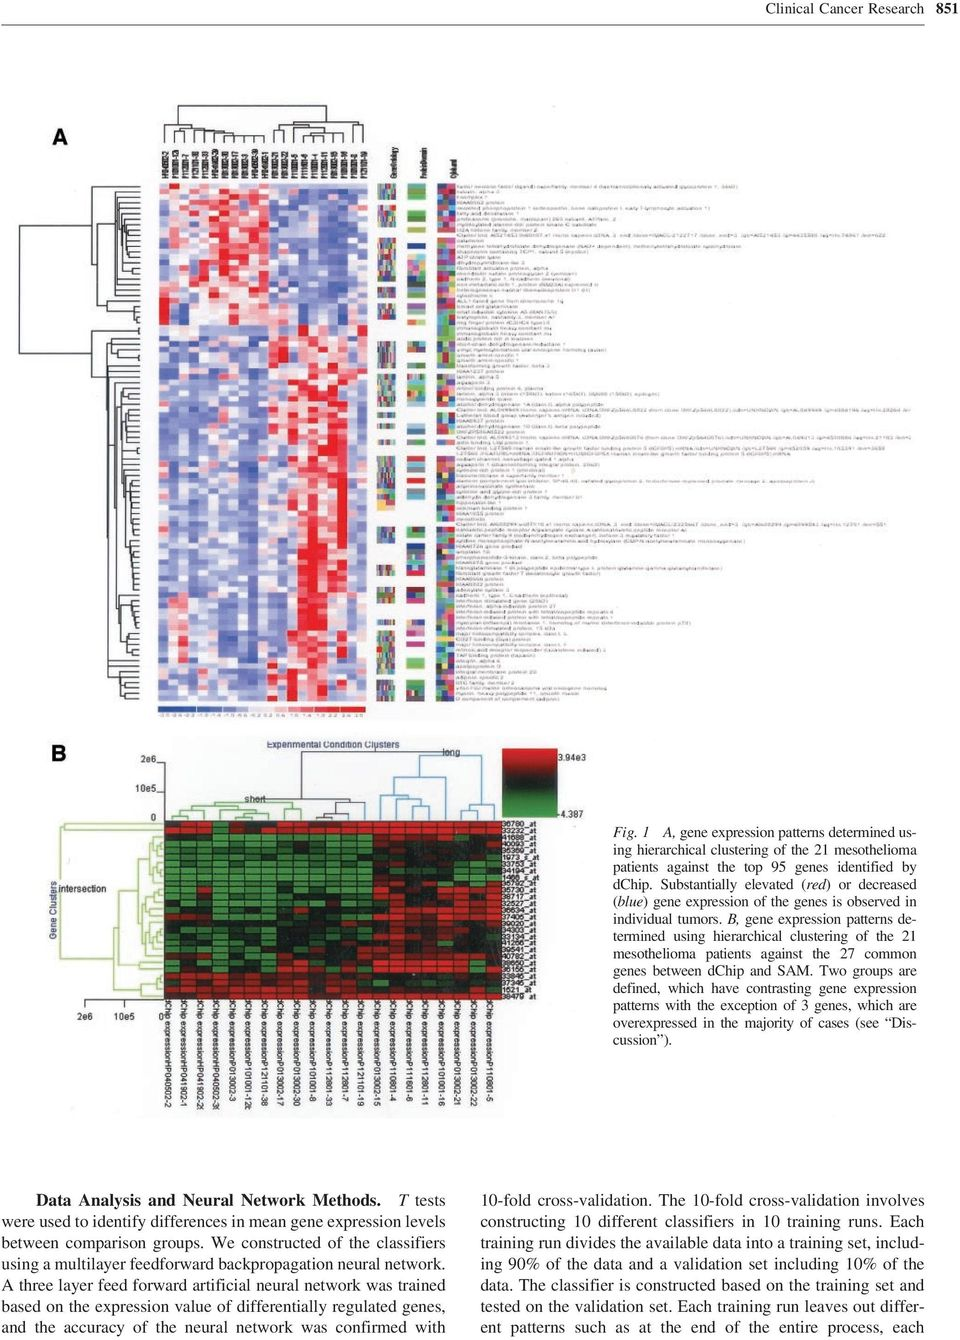 B, gene expression patterns determined using hierarchical clustering of the 21 mesothelioma patients against the 27 common genes between dchip and SAM.